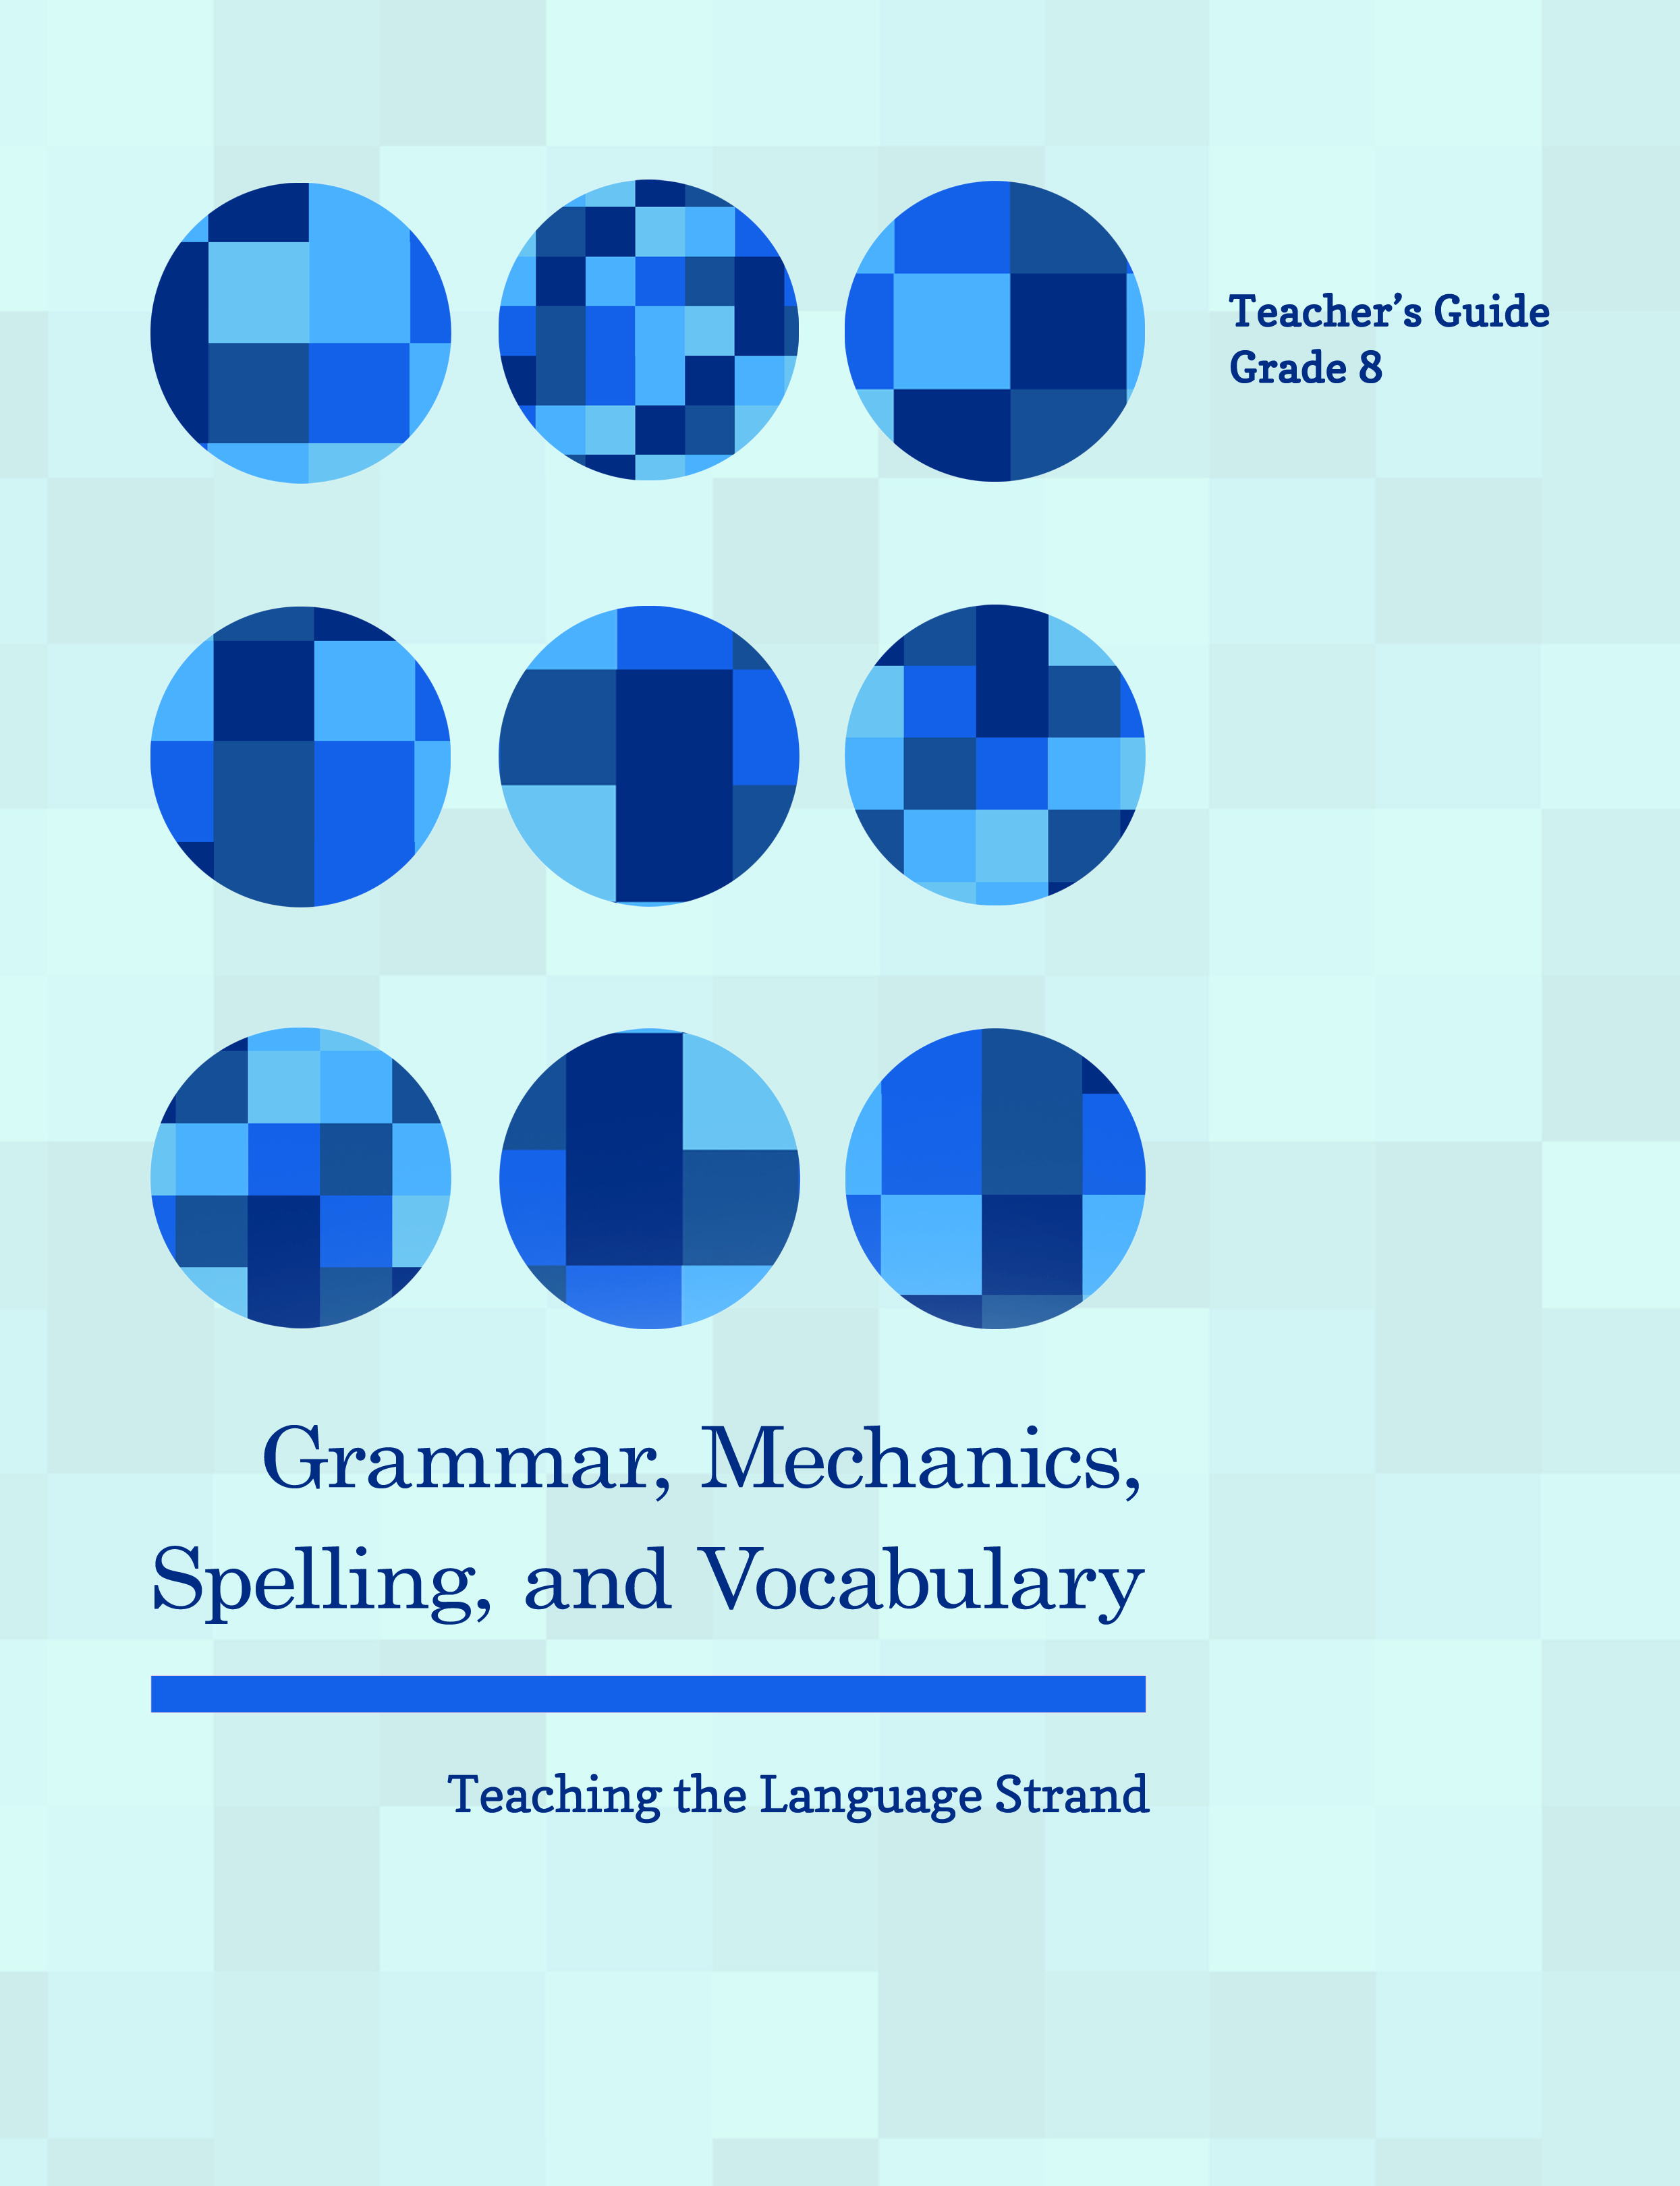 Pennington Publishing's Teaching the Language Strand Grades 4-8 Programs